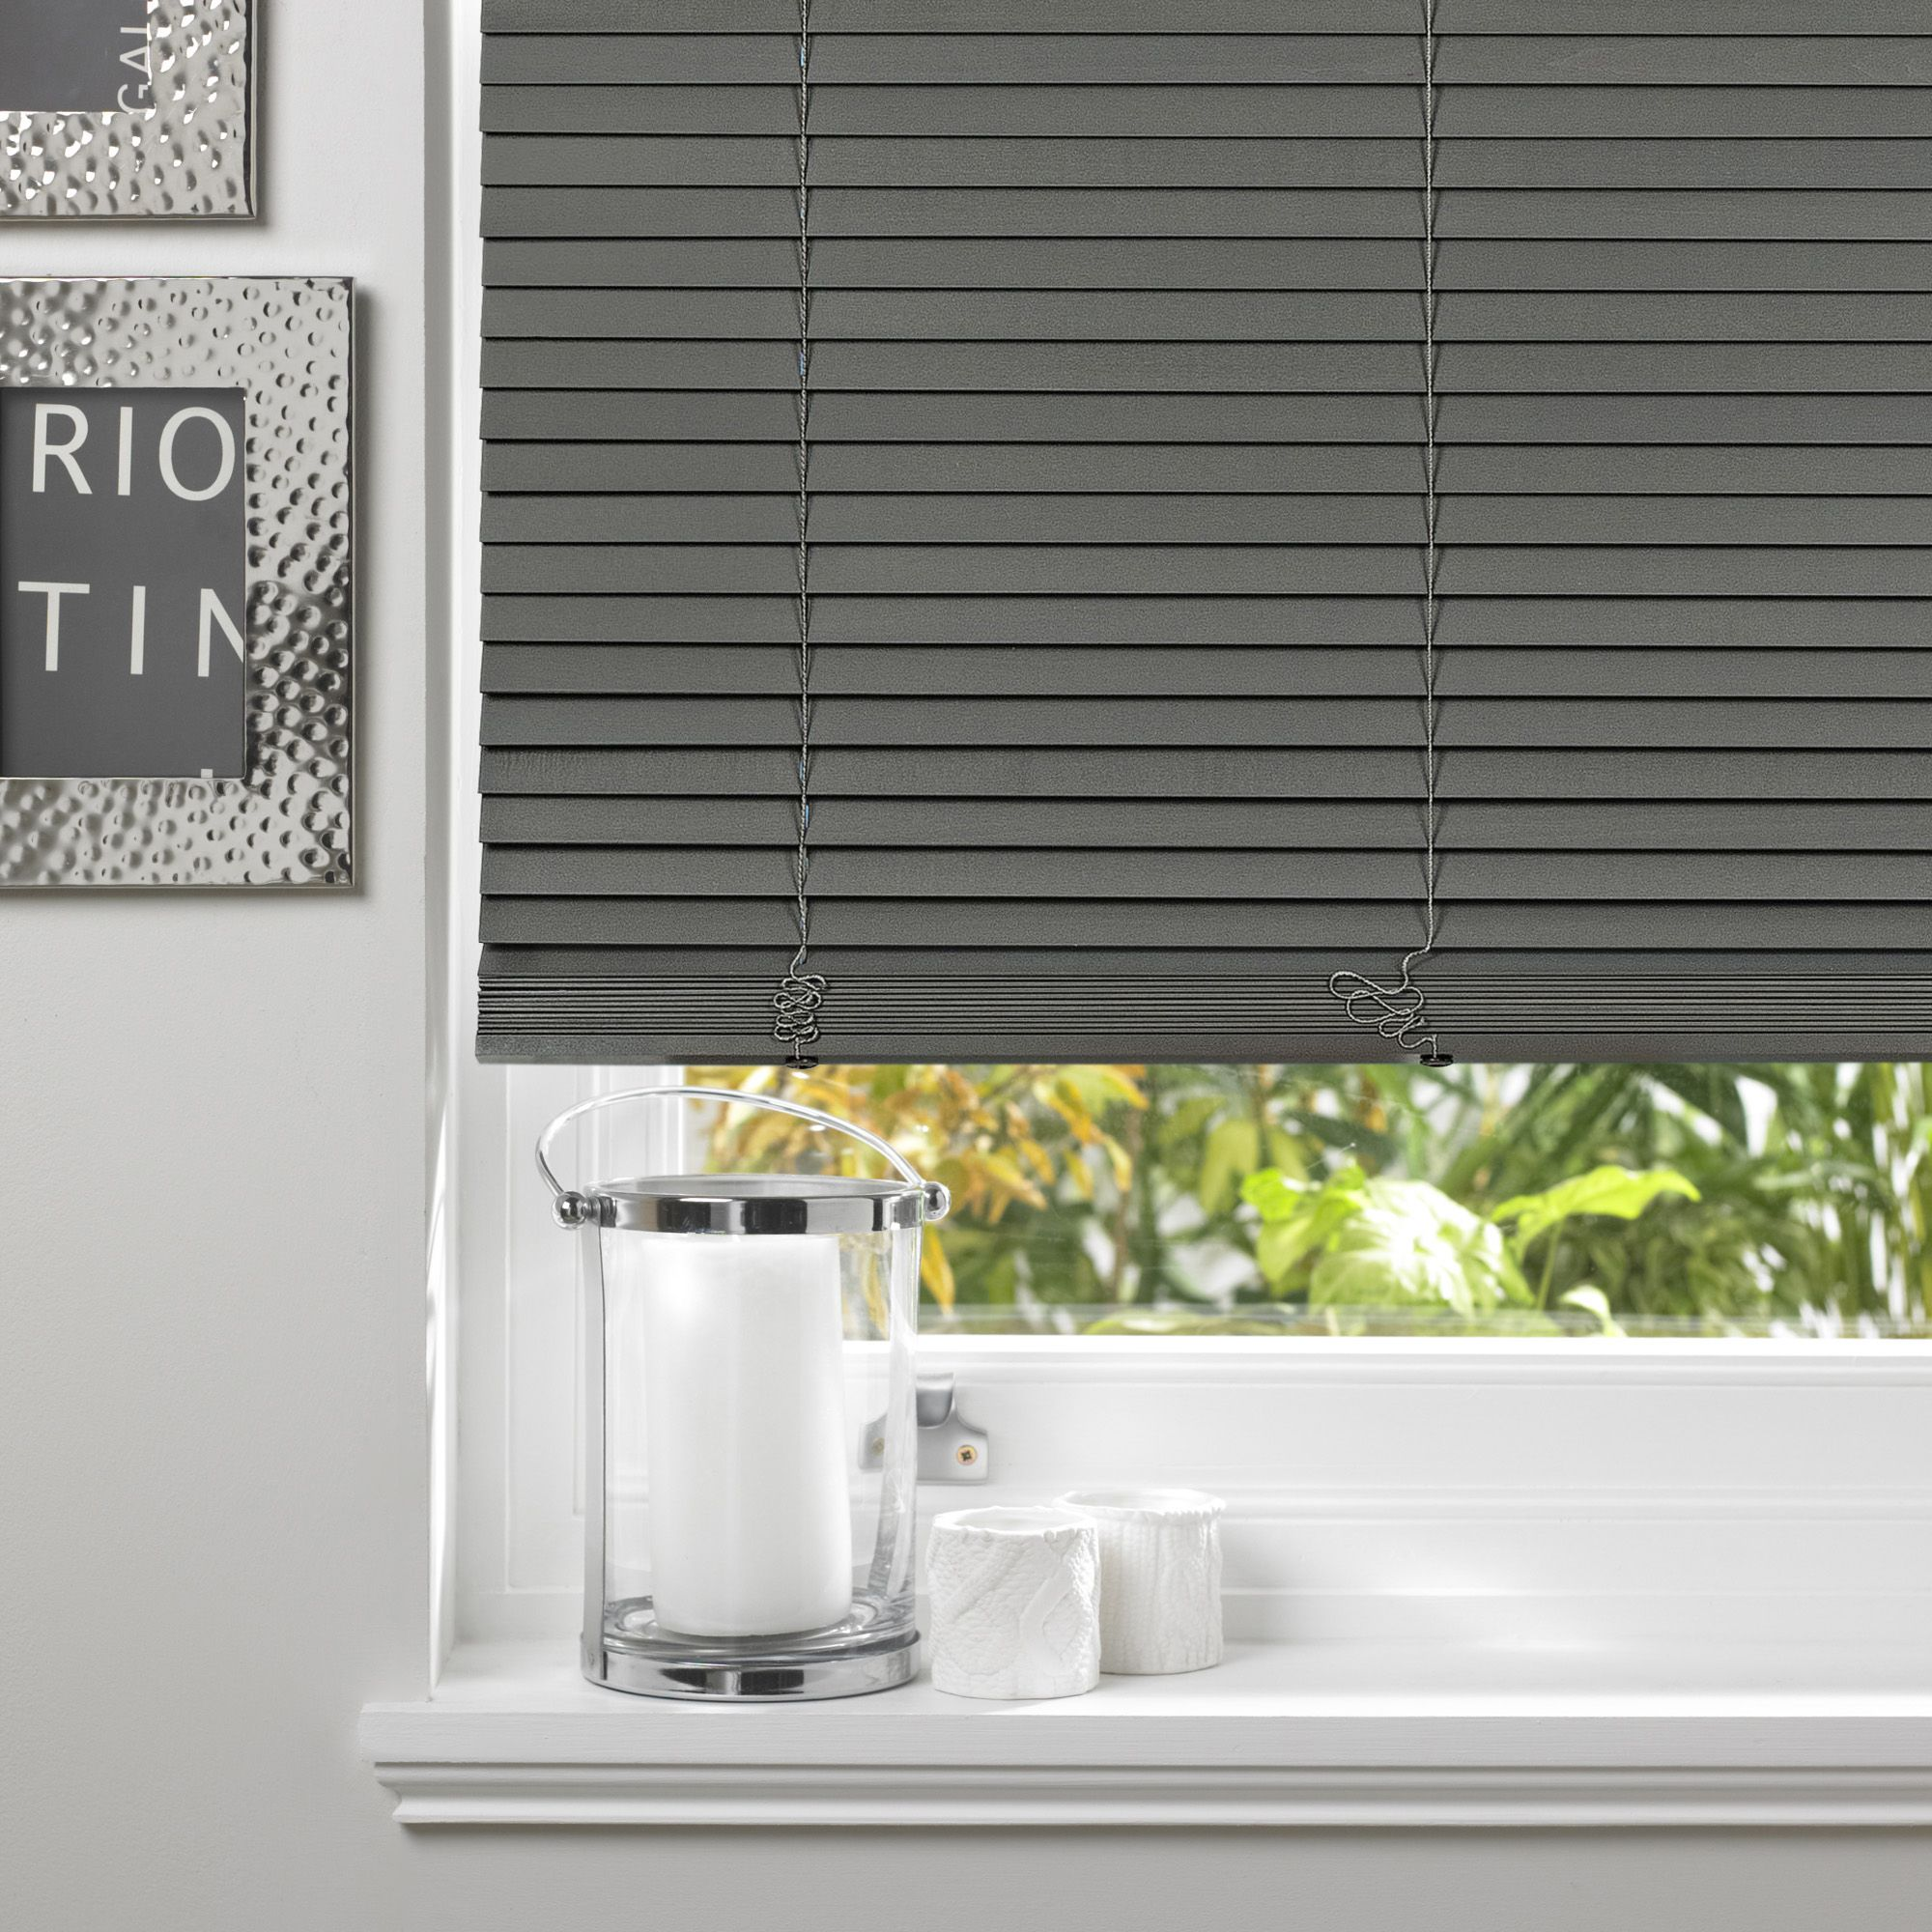 en pp tub dzin grey gb str blinds